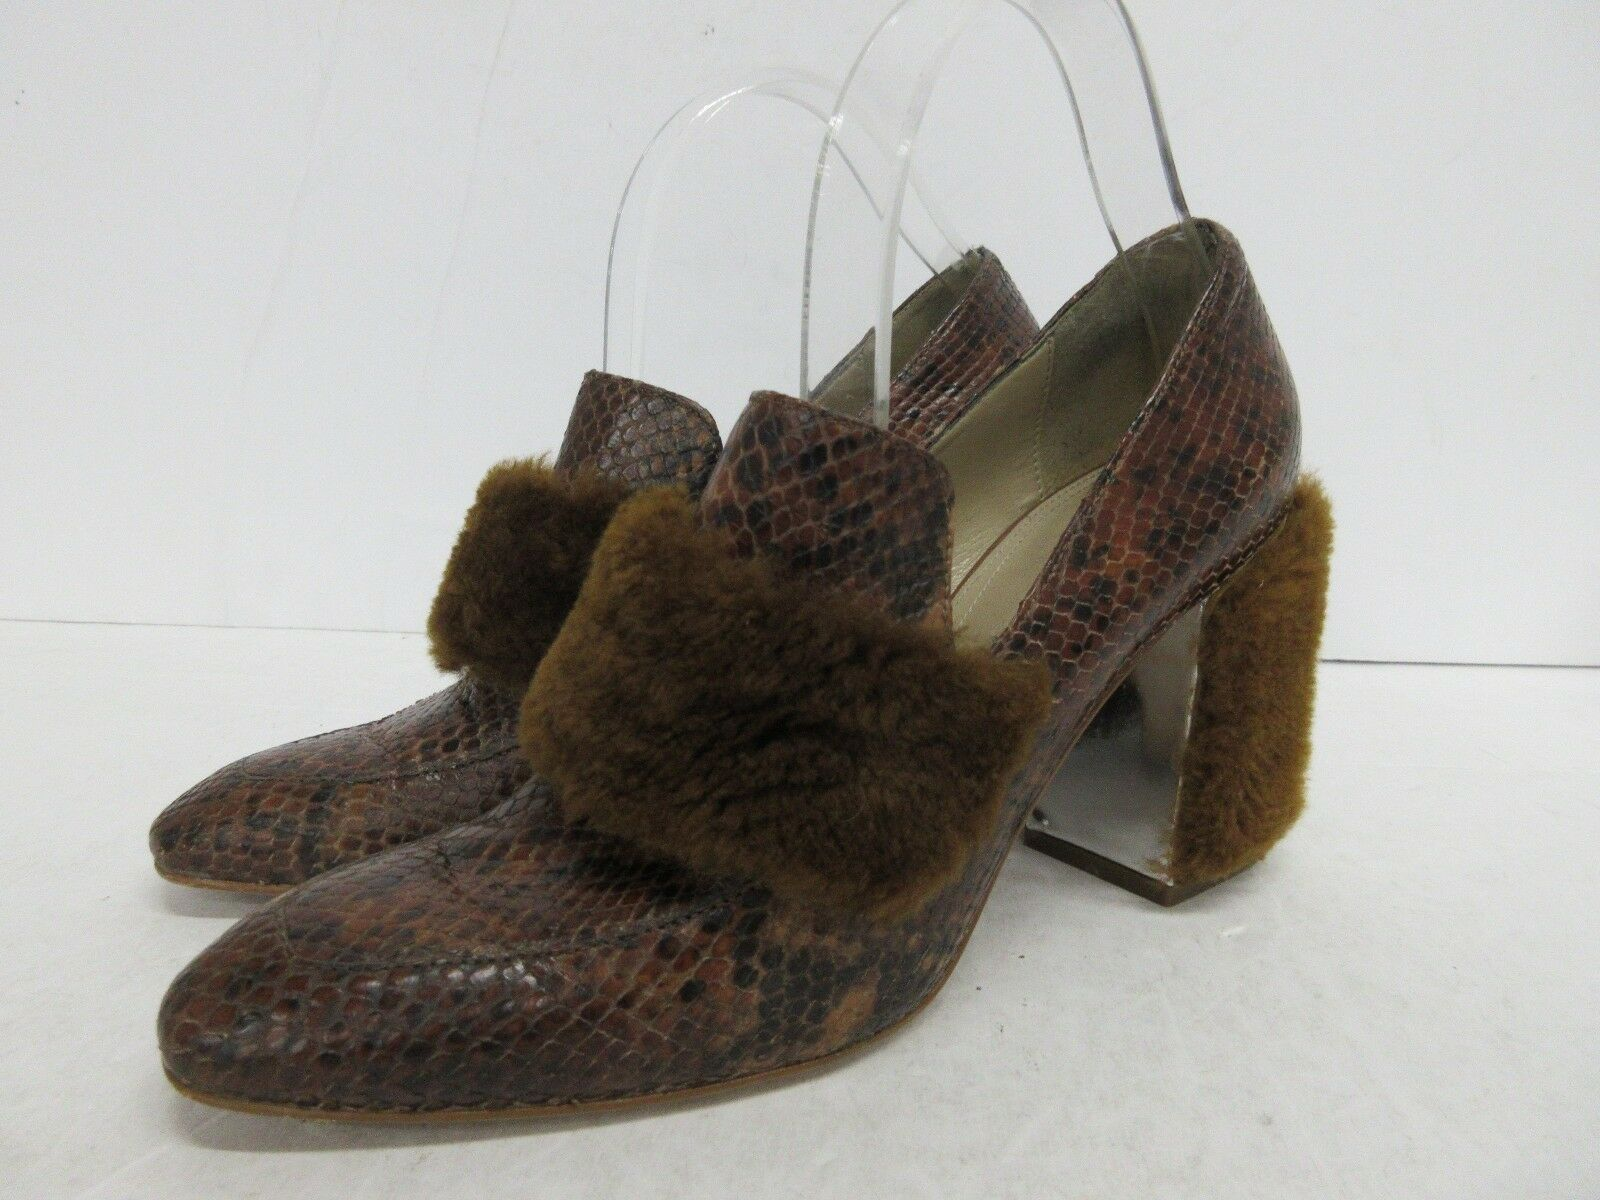 BCBGMAXAZRIA Snake Embossed Pelle Pump with Faux Fur Accents - 40 EUR